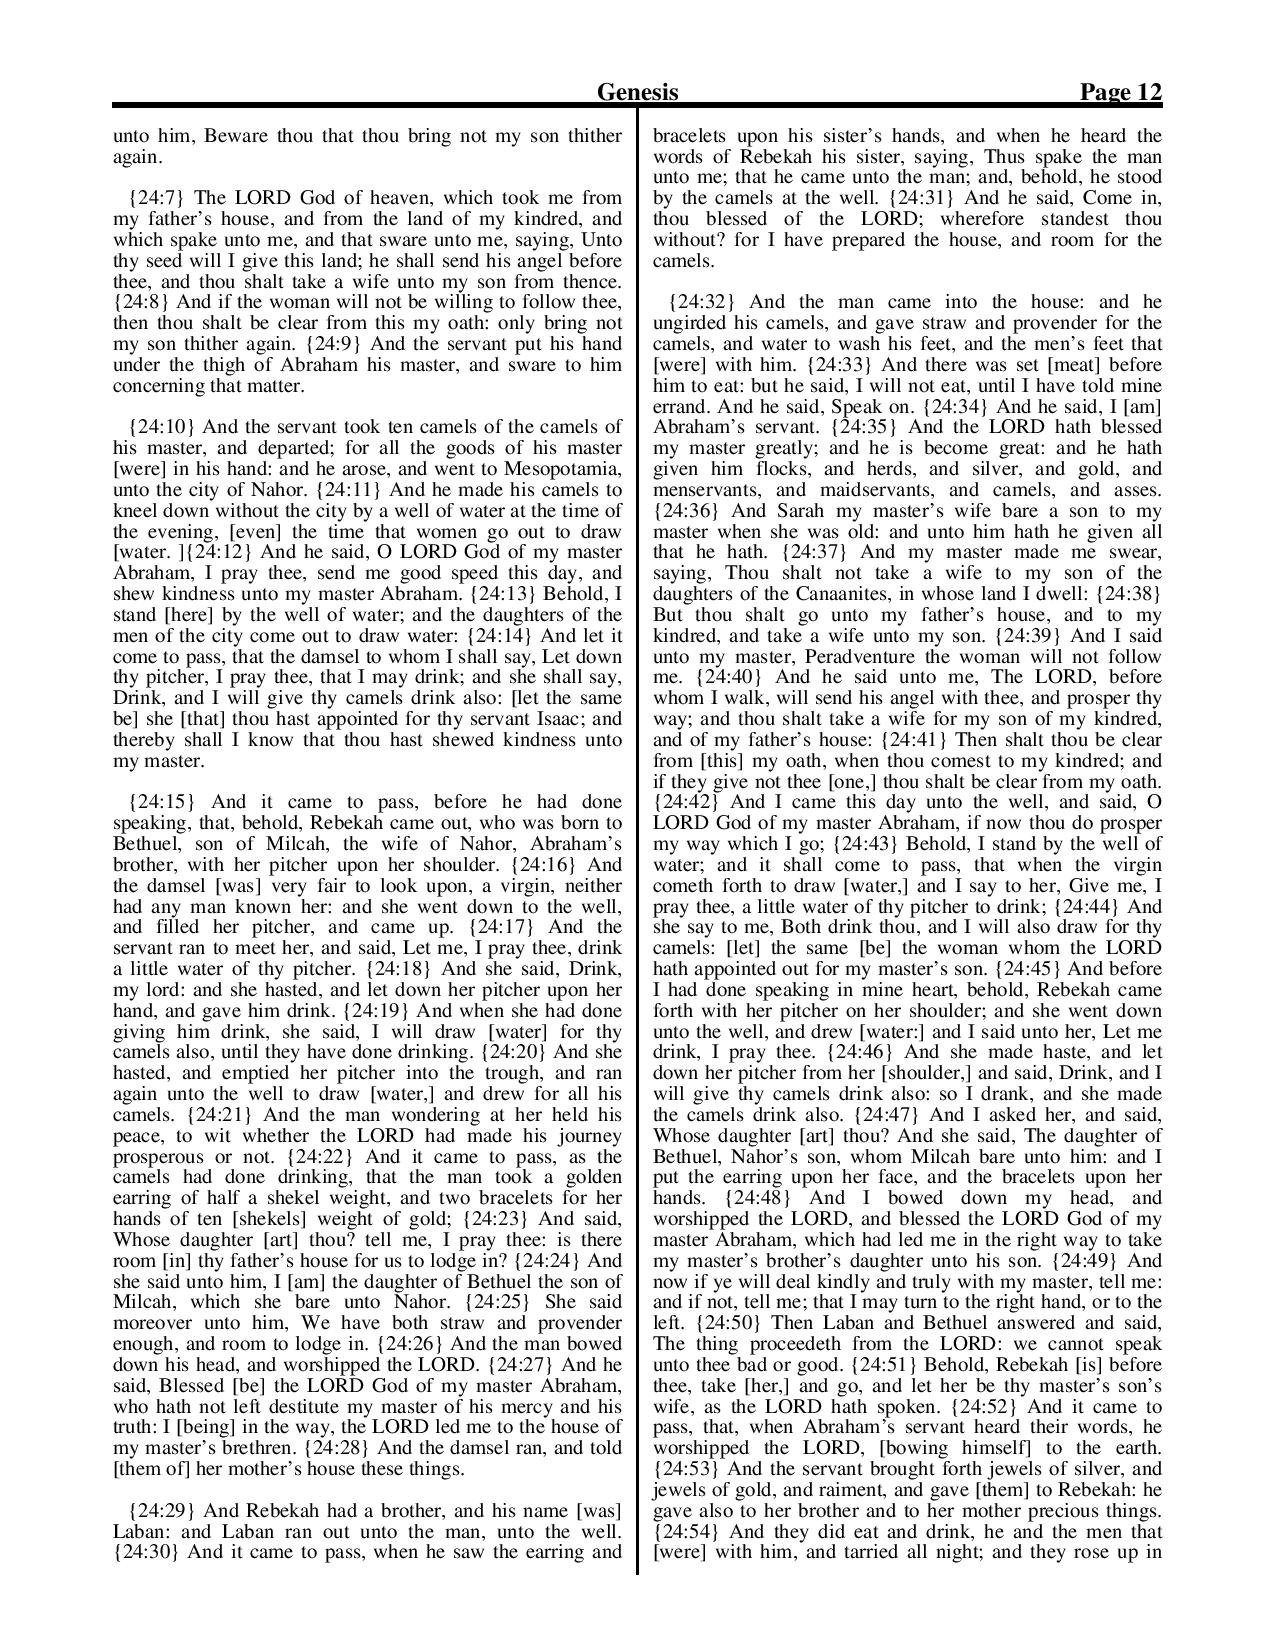 King-James-Bible-KJV-Bible-PDF-page-033